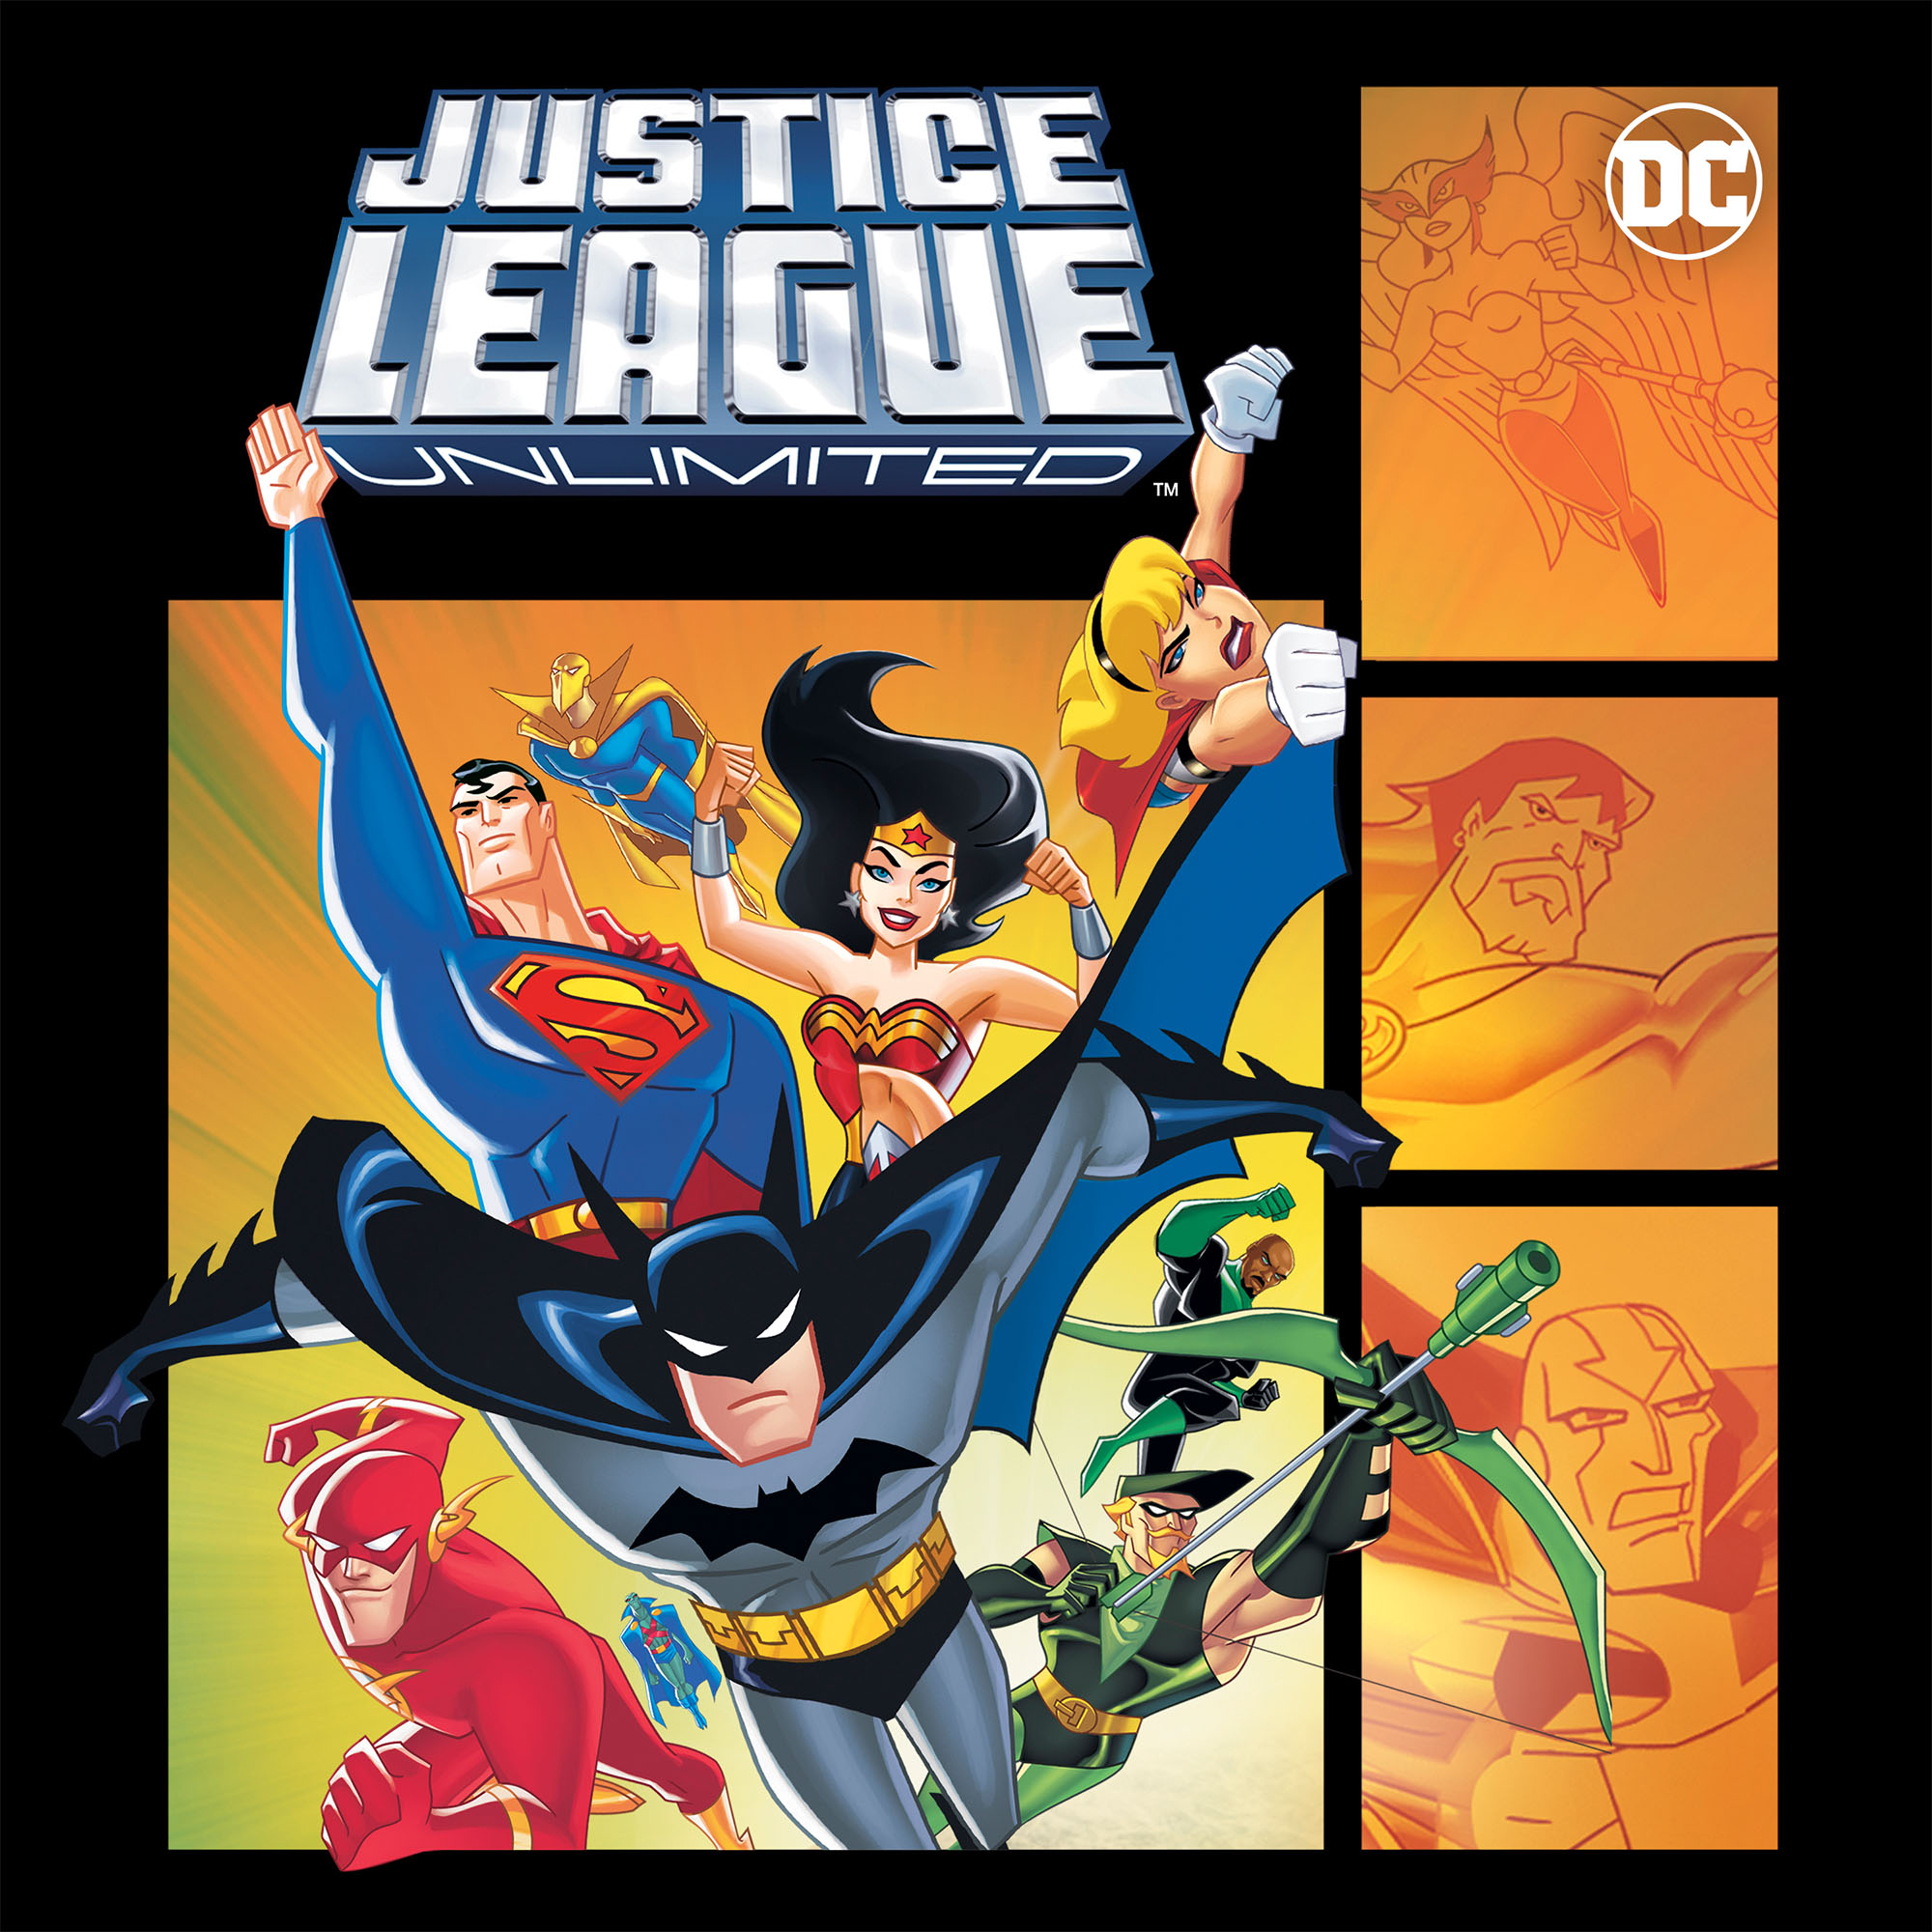 Watch Justice League Unlimited Season 1 on DC Universe